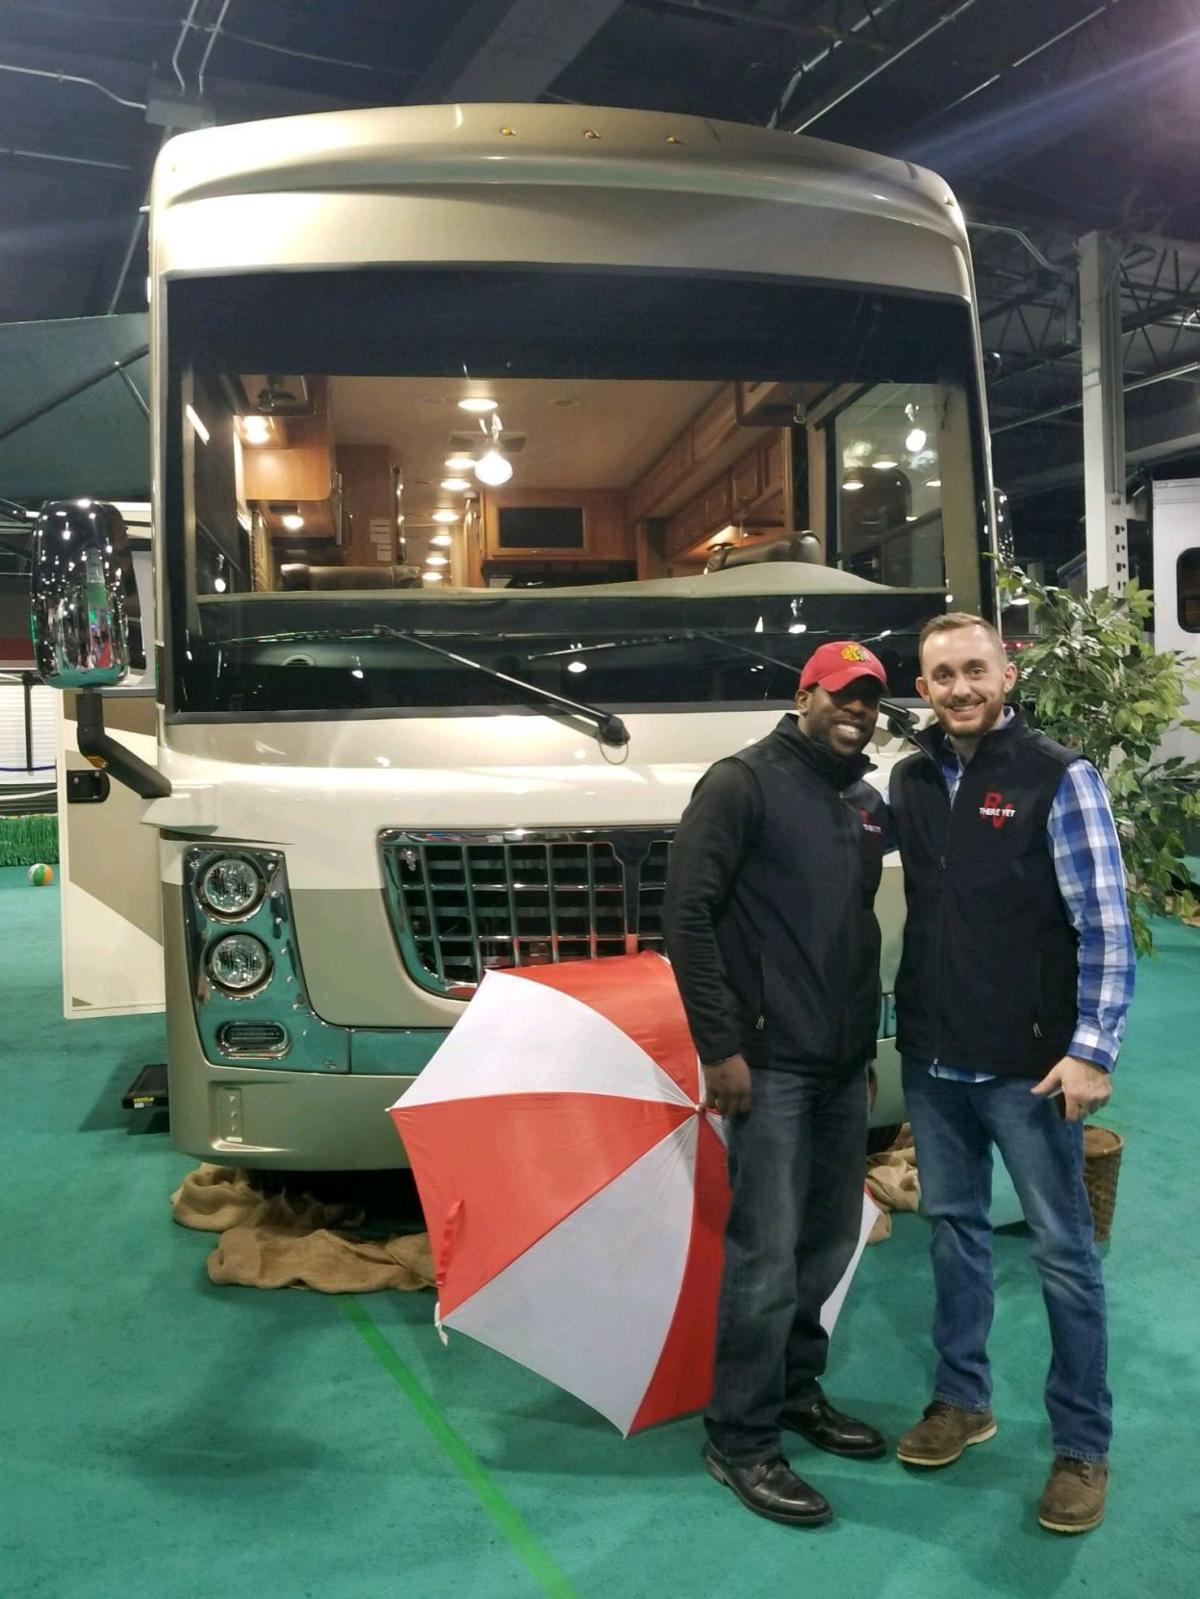 Local business RV There Yet an Airbnb for RV rentals | Lake